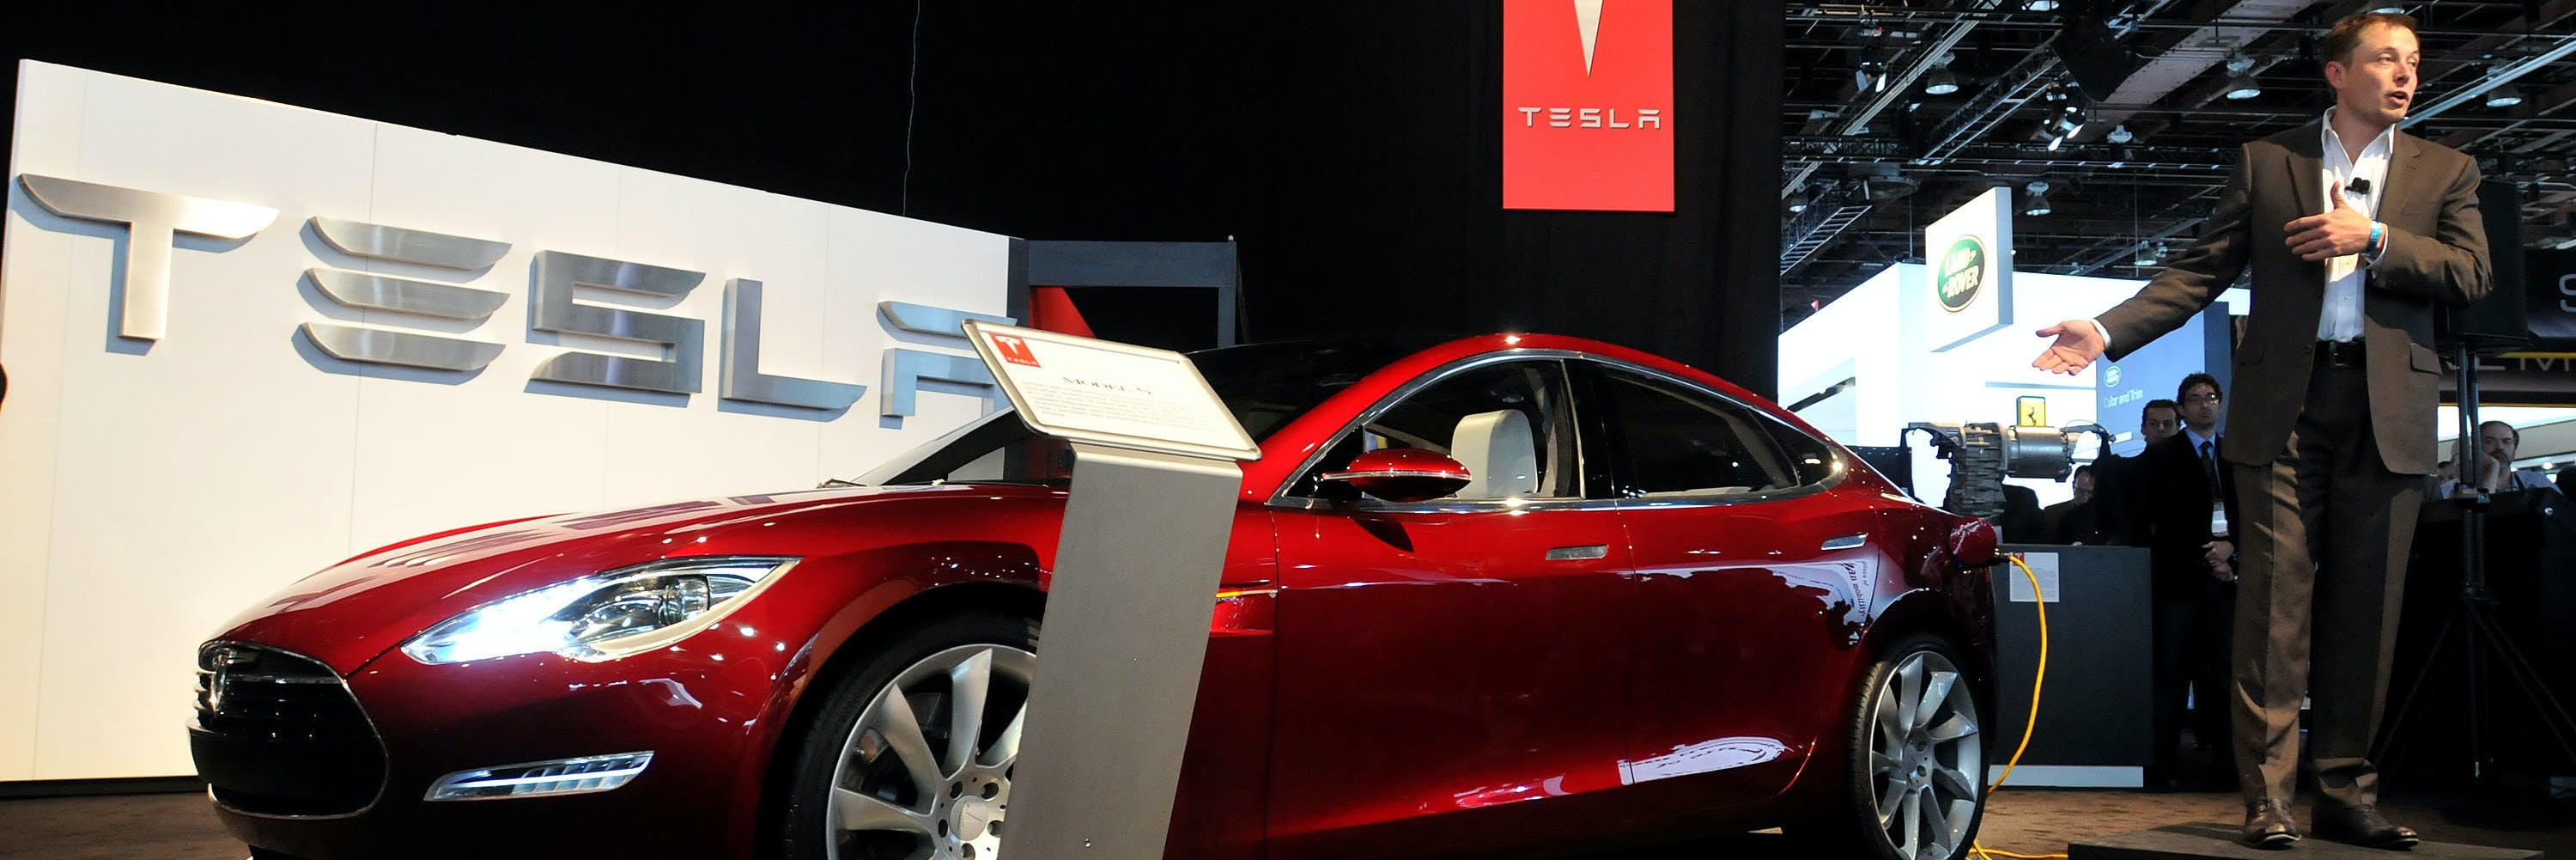 DETROIT -  JANUARY 12:  Elon Musk, Chairman, Product Architect and CEO, Tesla Motors, talks about the Model S electric vehicle during the press preview for the world automotive press at North American International Auto Show in Cobo Center January 12, 2010 in Detroit, Michigan. The 2010 North American International Auto Show (NAIAS) opens to the public January 16th. (Photo by Bryan Mitchell/Getty Images)